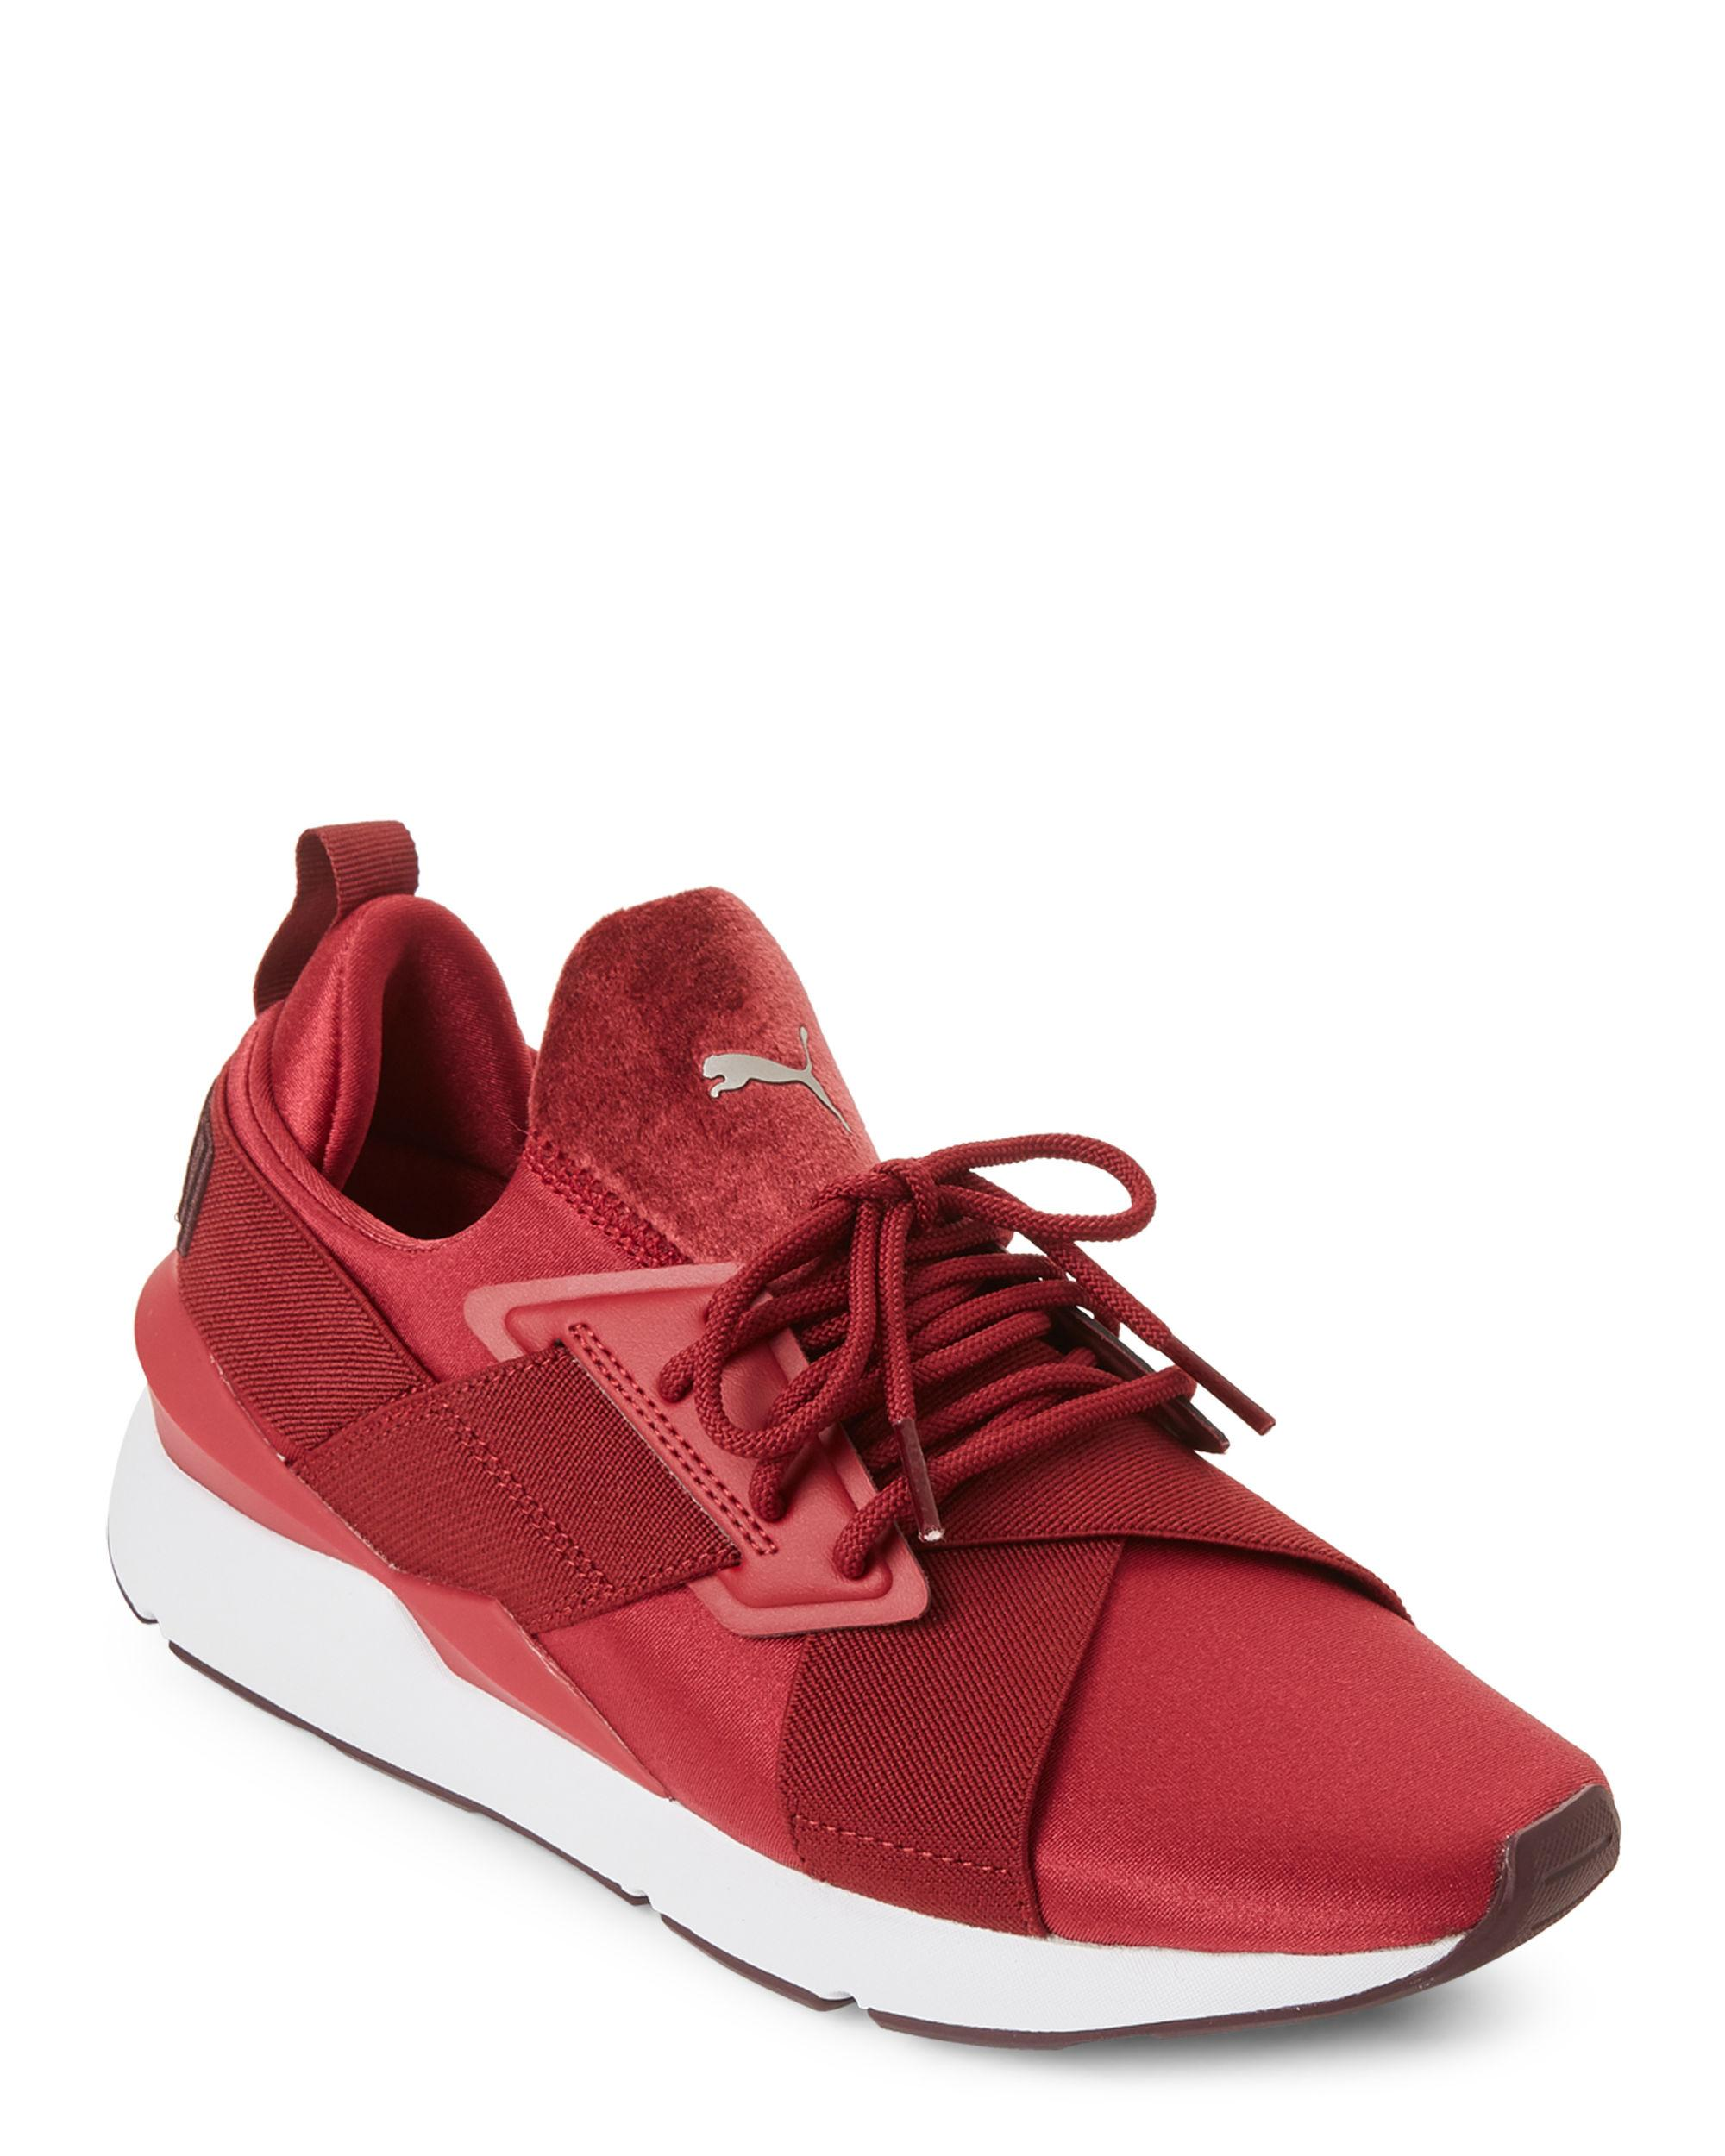 PUMA Pomegranate Muse Satin Sneakers in